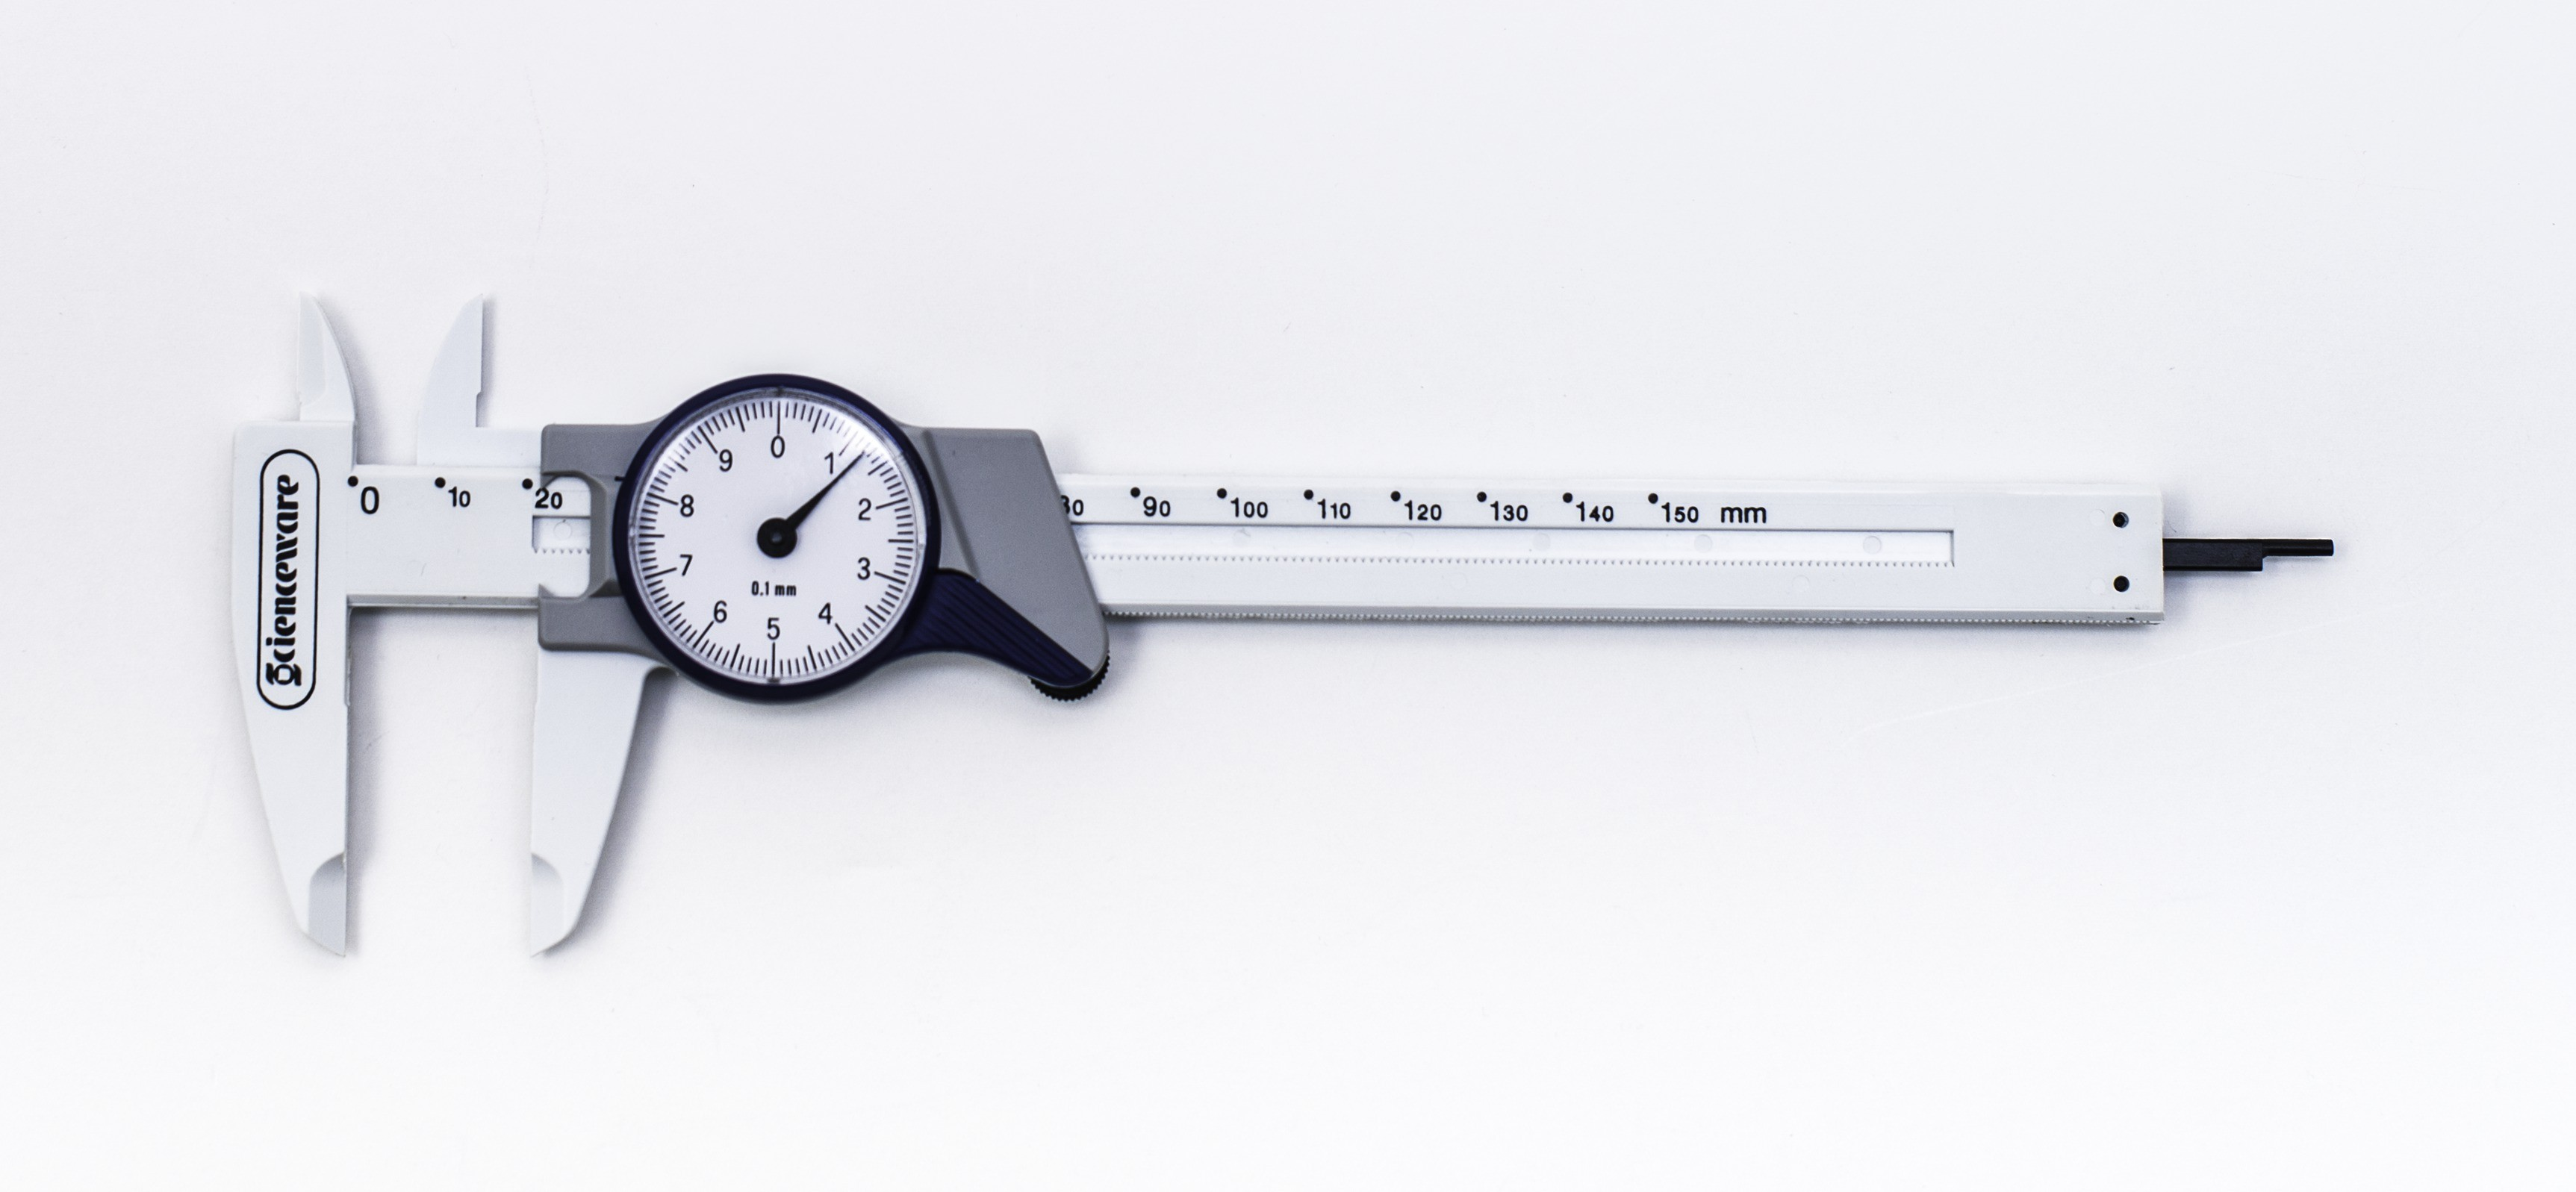 SP Bel-Art Dial Calipers with Metric Scales